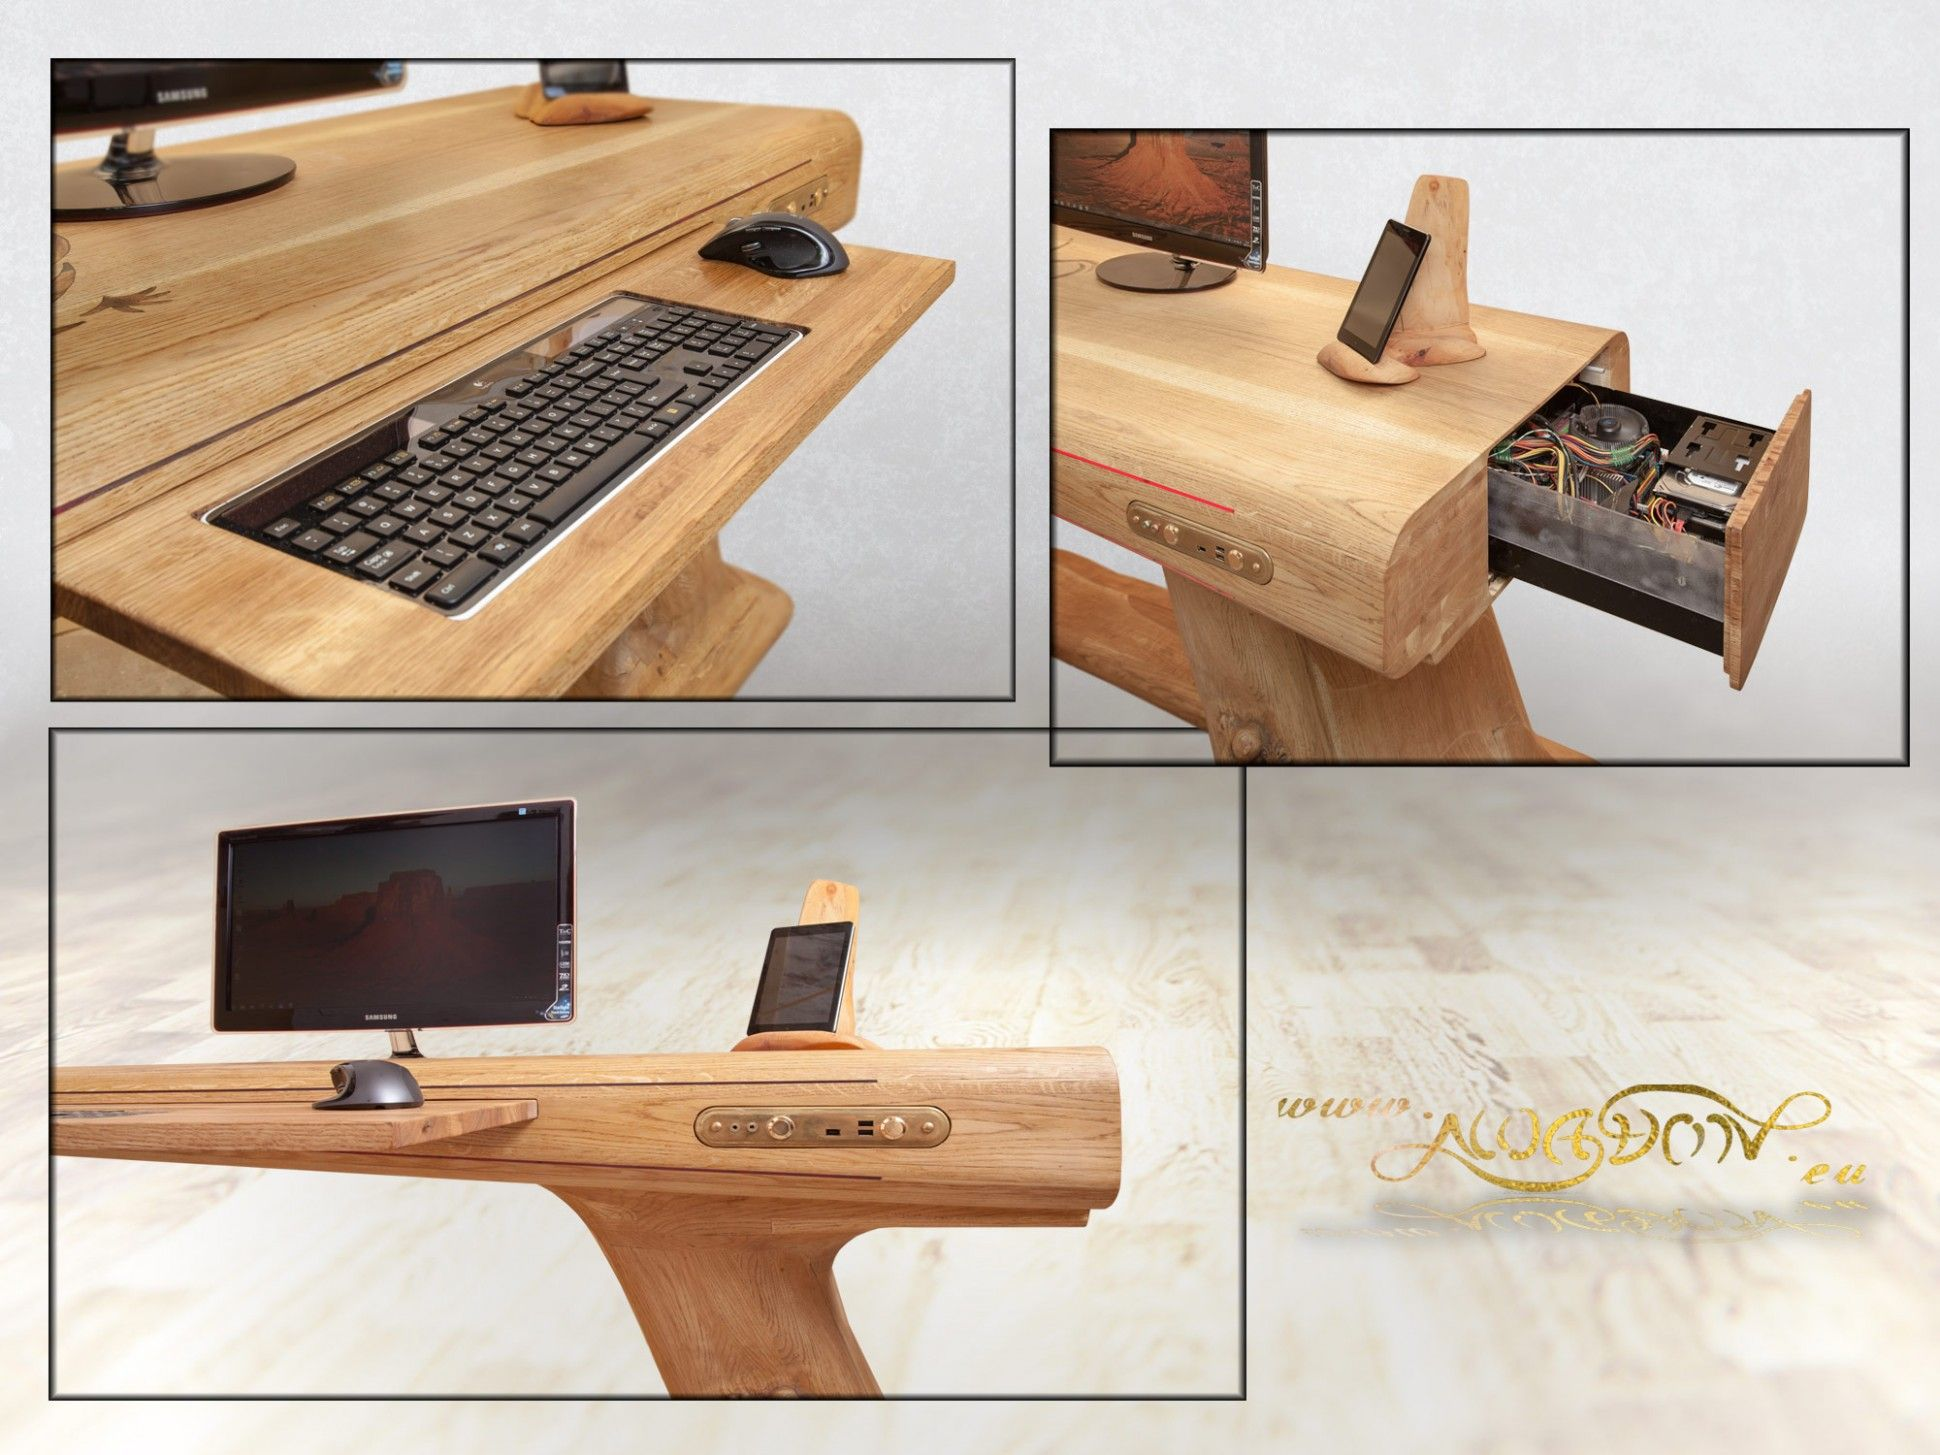 This Pc Desk Is Made From Oak Wood Planks For